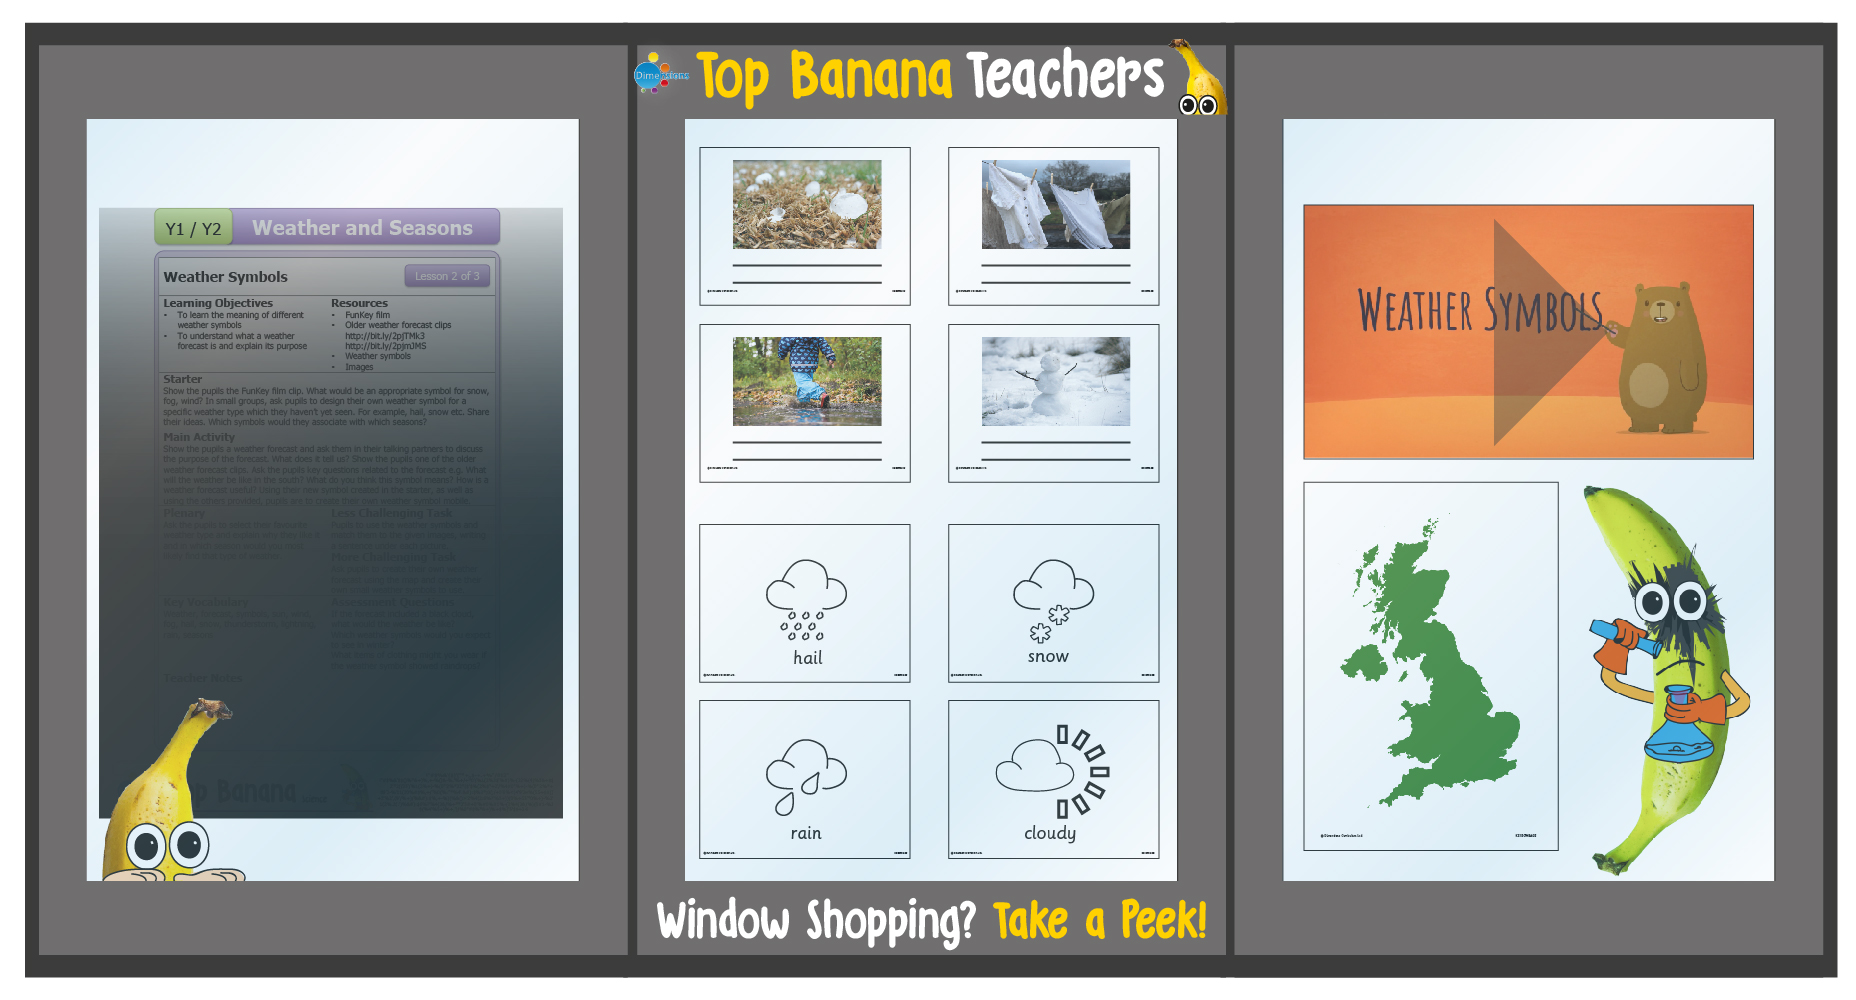 Weather Symbols Top Banana Teachers Resources Top Banana